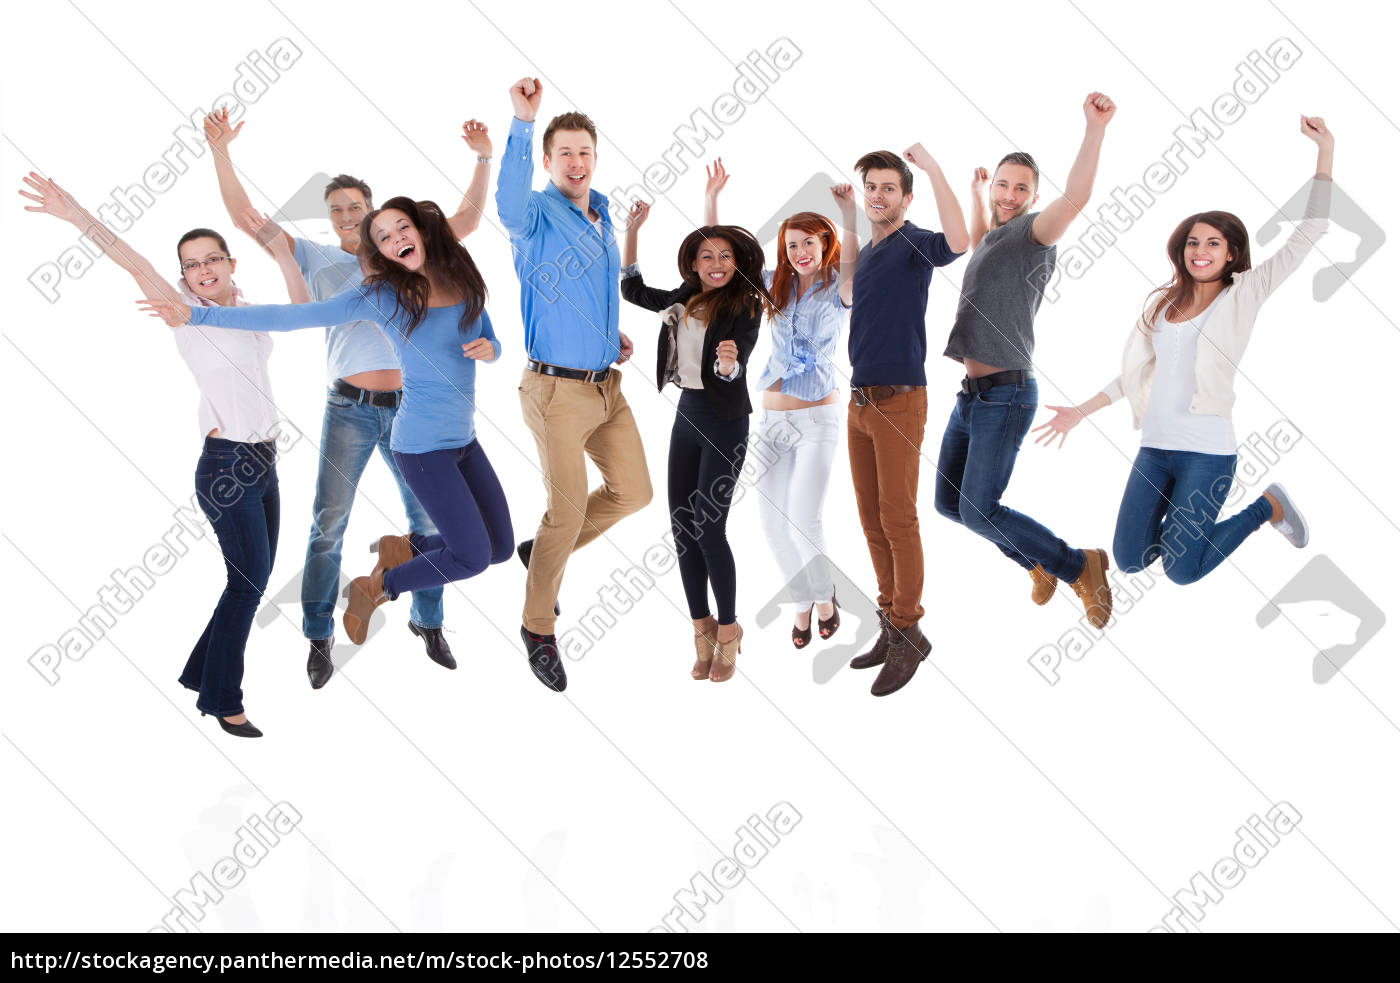 group, of, diverse, people, raising, arms - 12552708